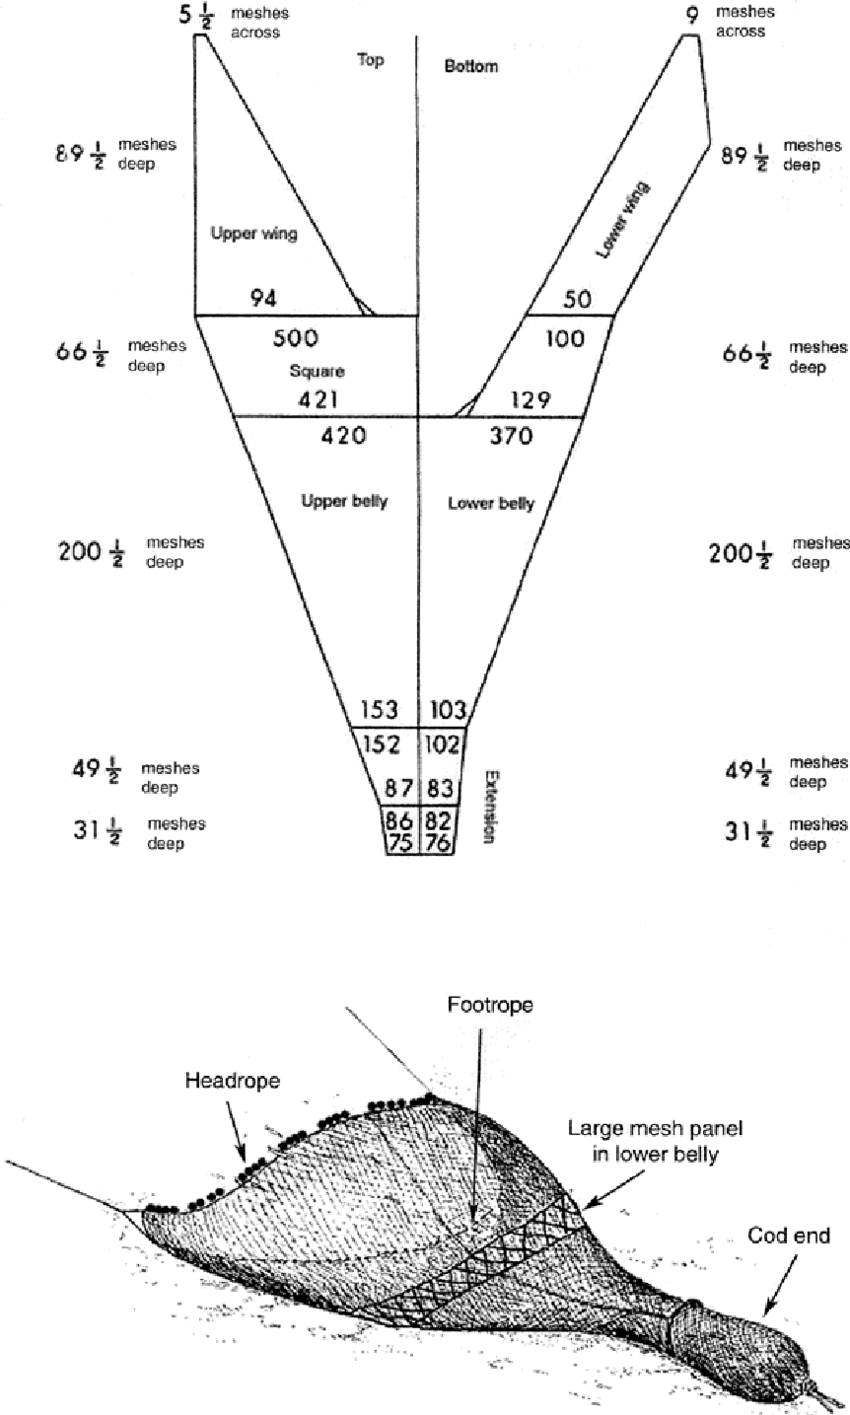 hight resolution of  diagram of the nets used in the study and the placement of the large